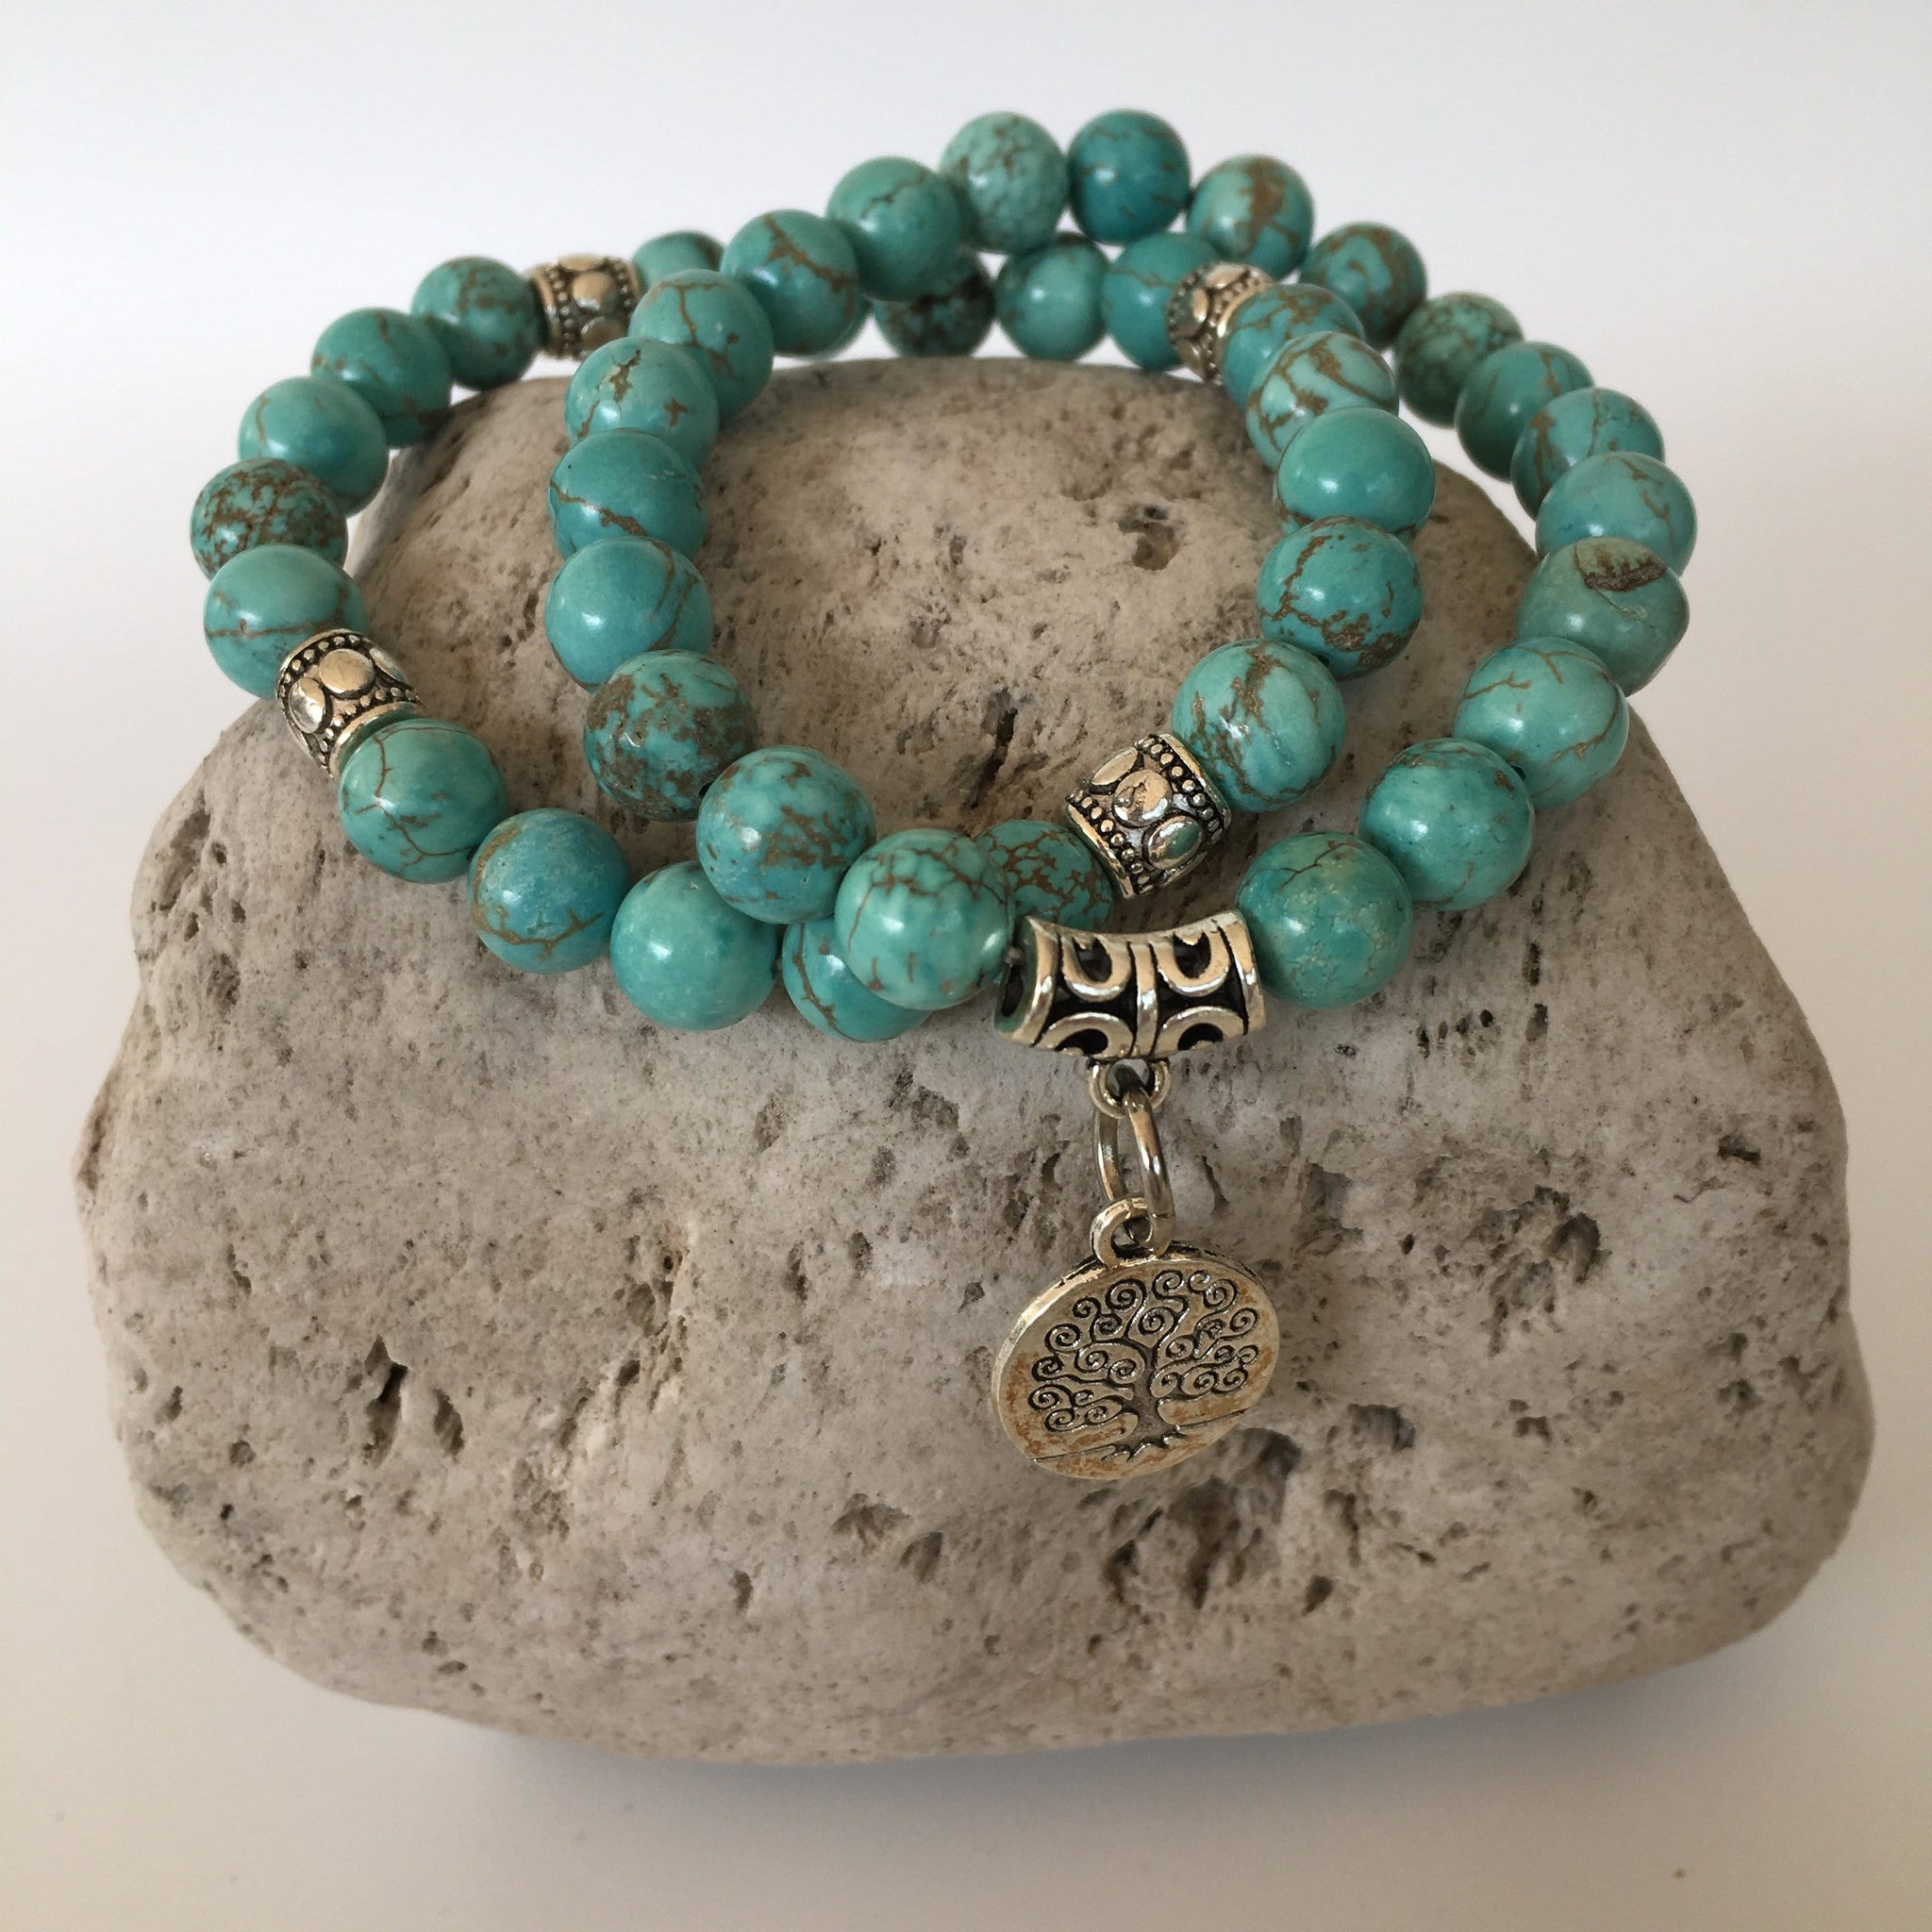 Turquoise 8mm Stone Bracelet Set with Tree of Life Charm